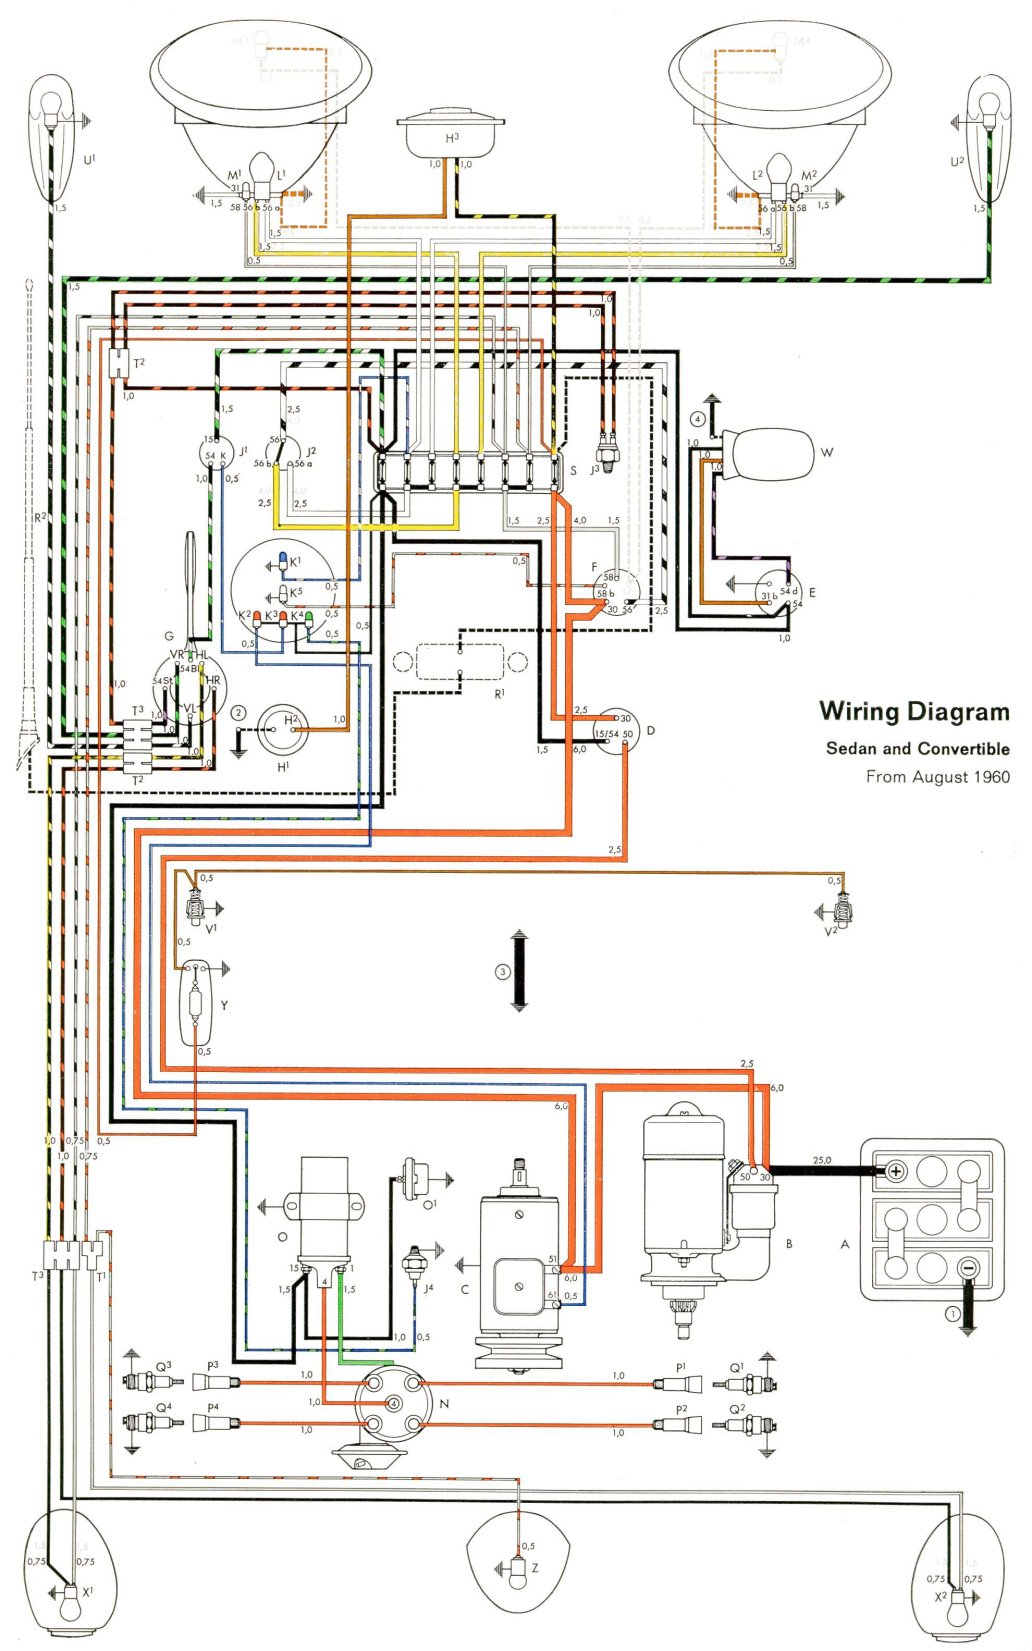 bug_61 1961 beetle wiring diagram thegoldenbug com vw bug wiring diagram at eliteediting.co